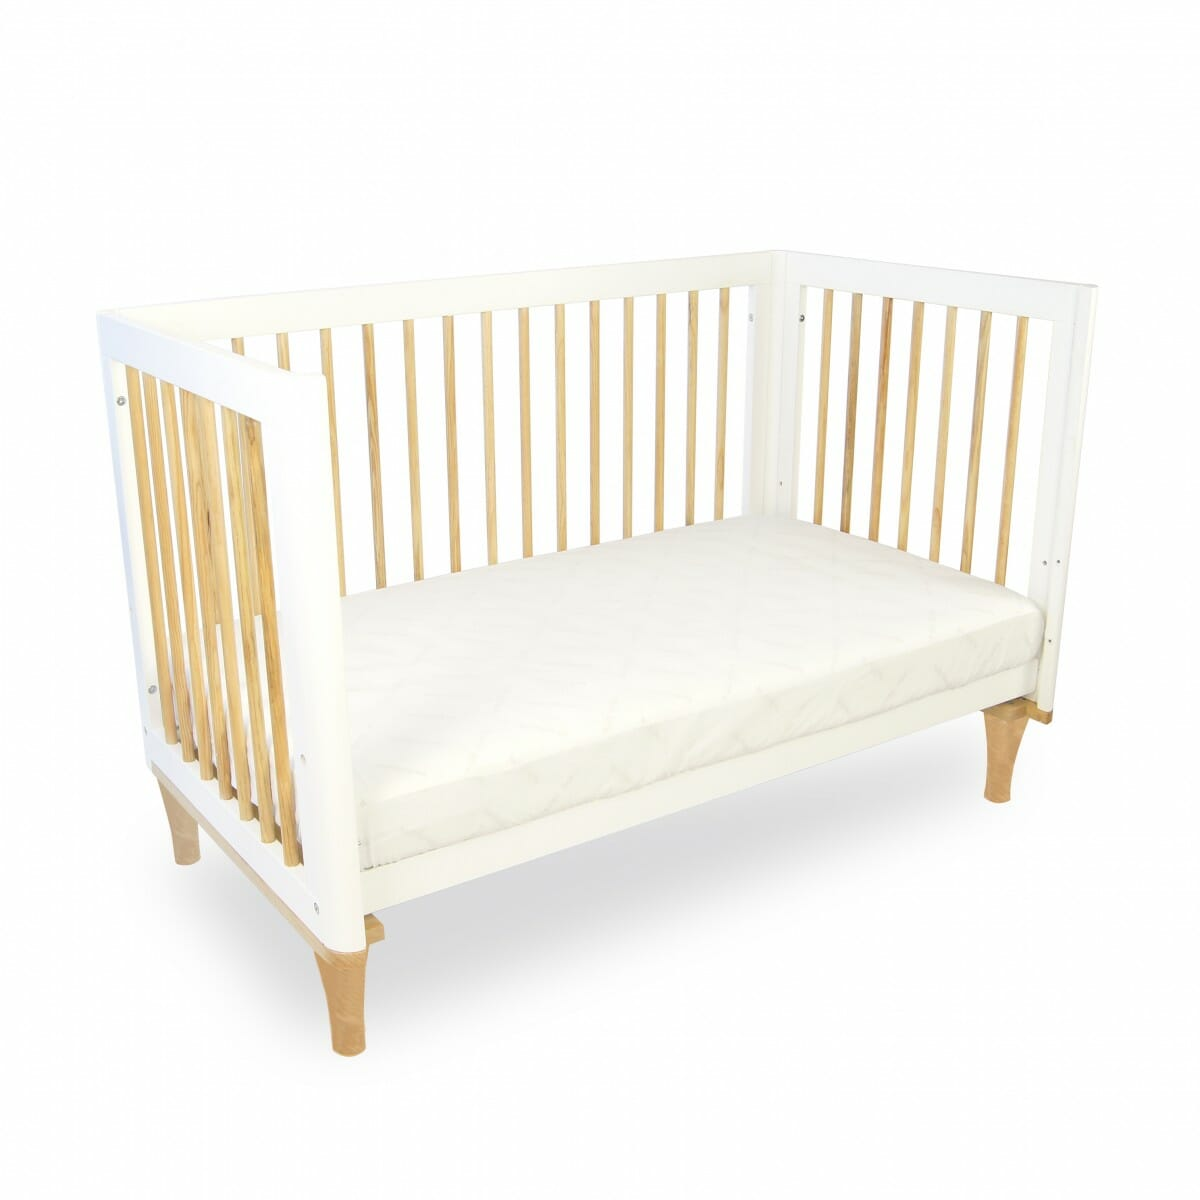 https://www.bubsngrubs.com.au/wp-content/uploads/2016/10/babyhood-Riya-cot-toddler-bed.jpg